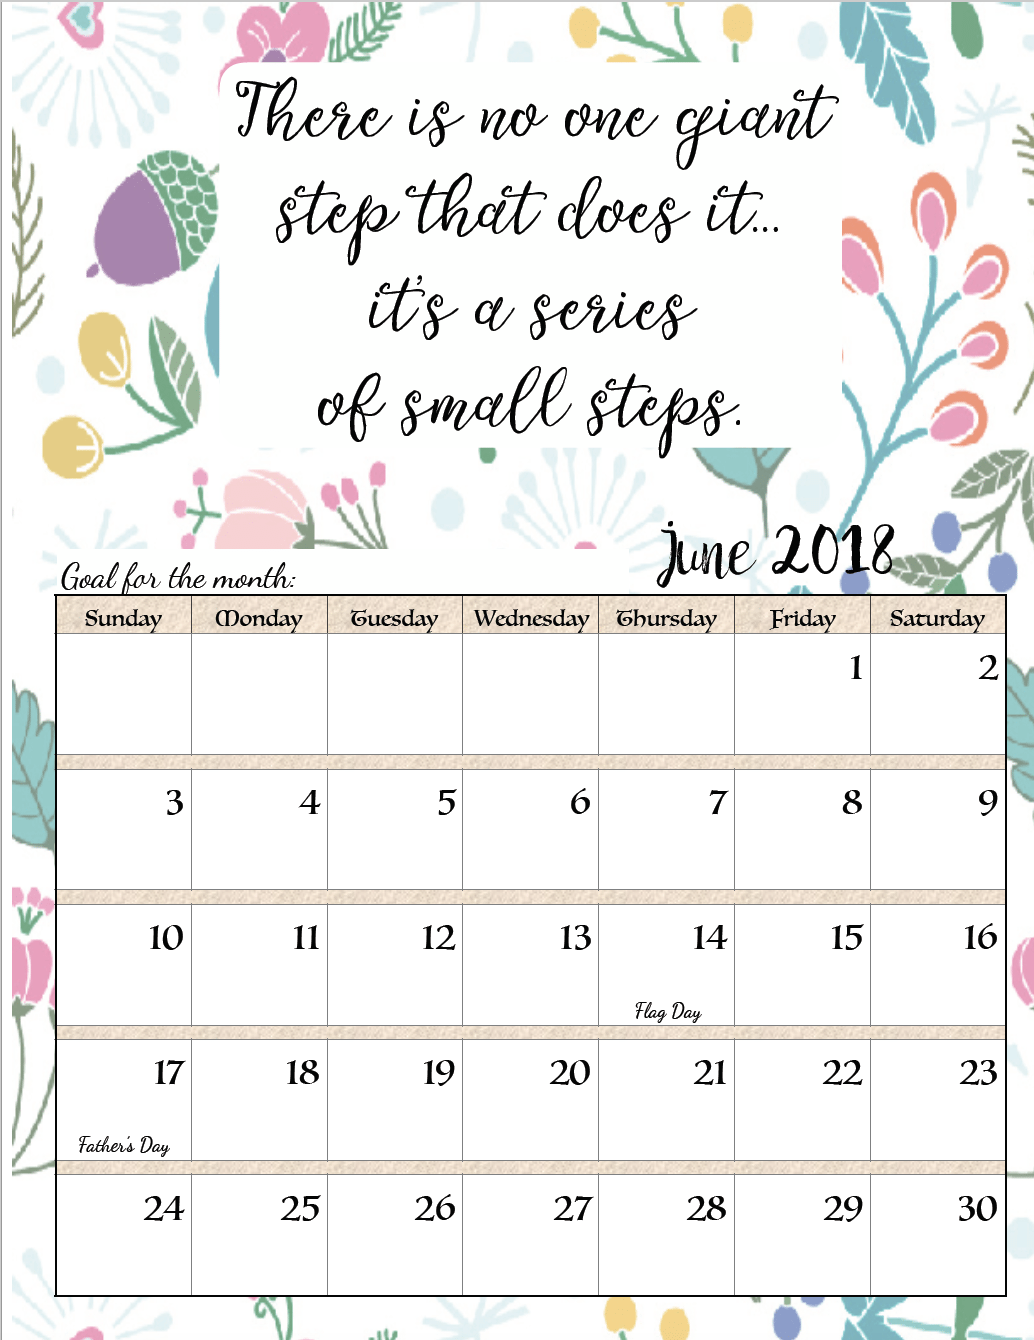 free printable 2018 monthly motivational calendars space for setting goals different motivational quote each month holidays marked links to more free